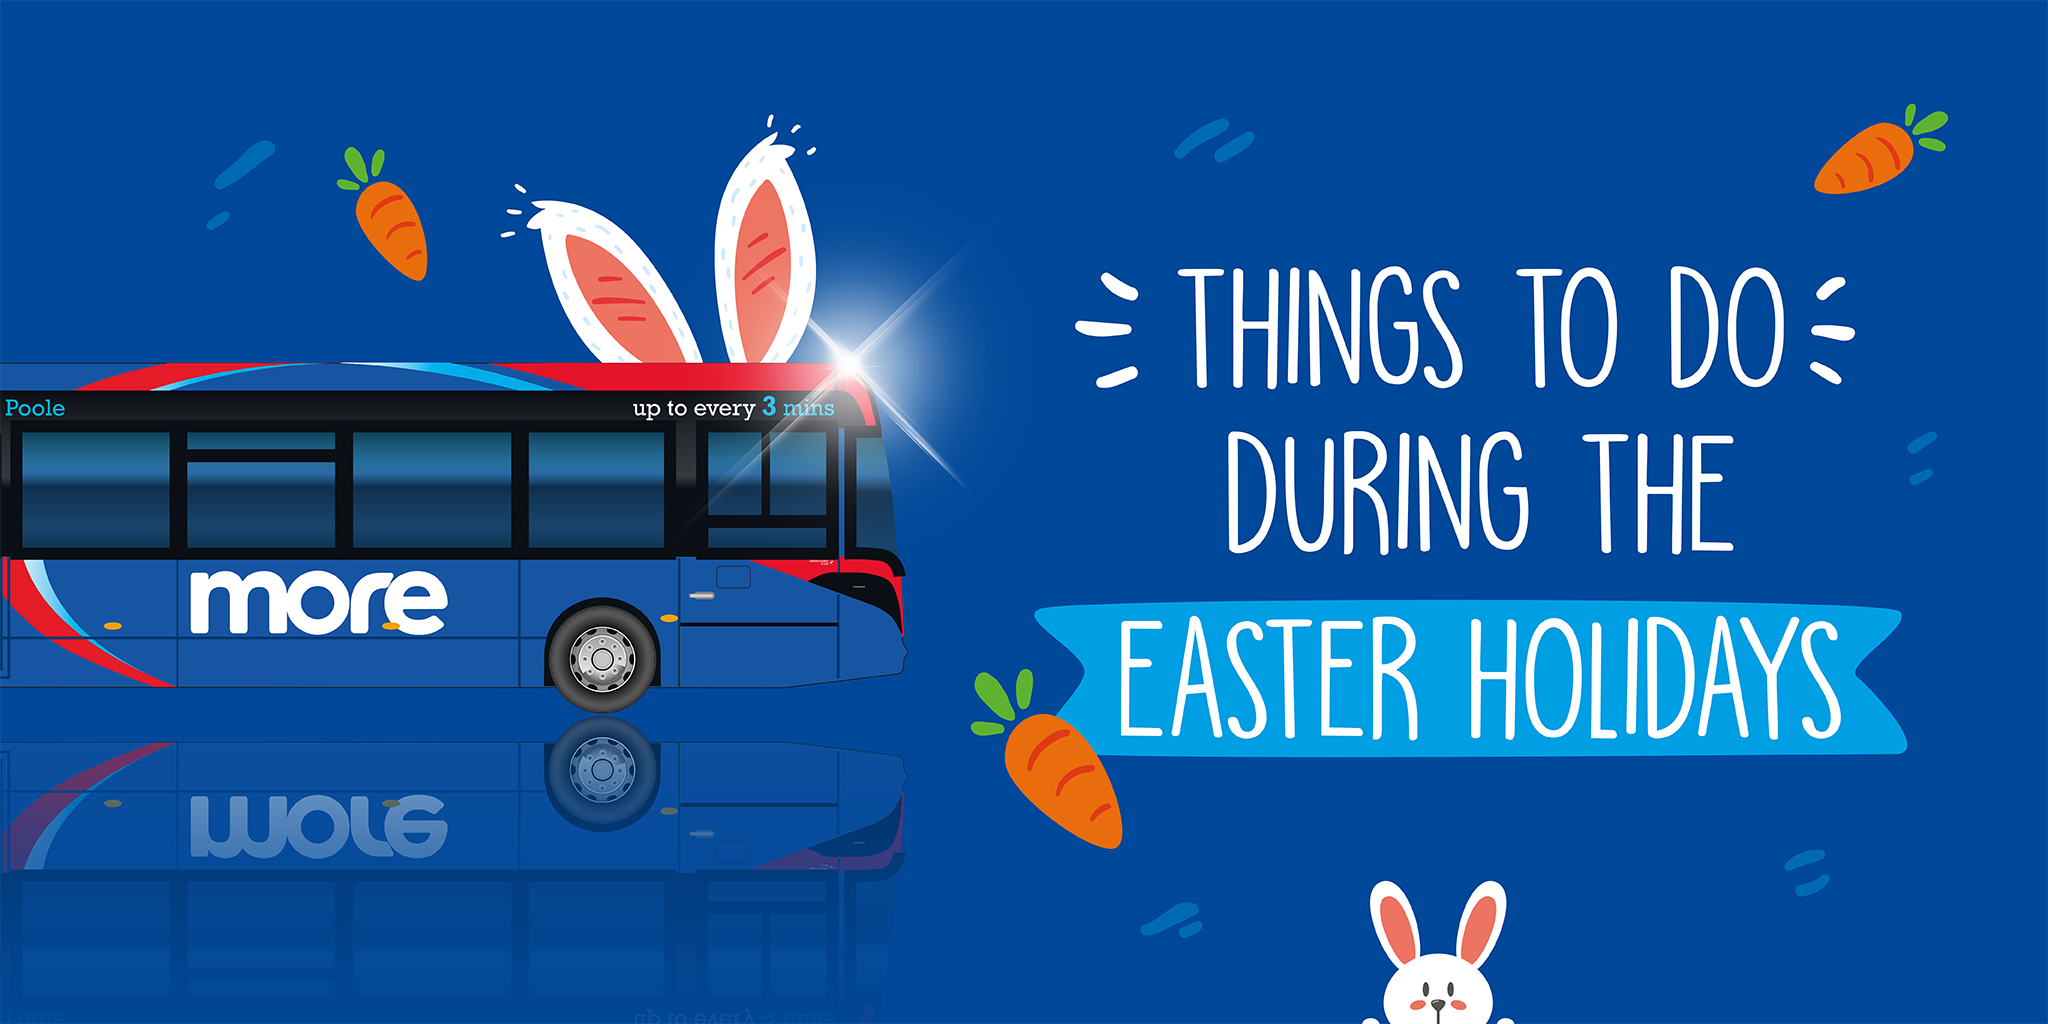 Things to do during the Easter holidays